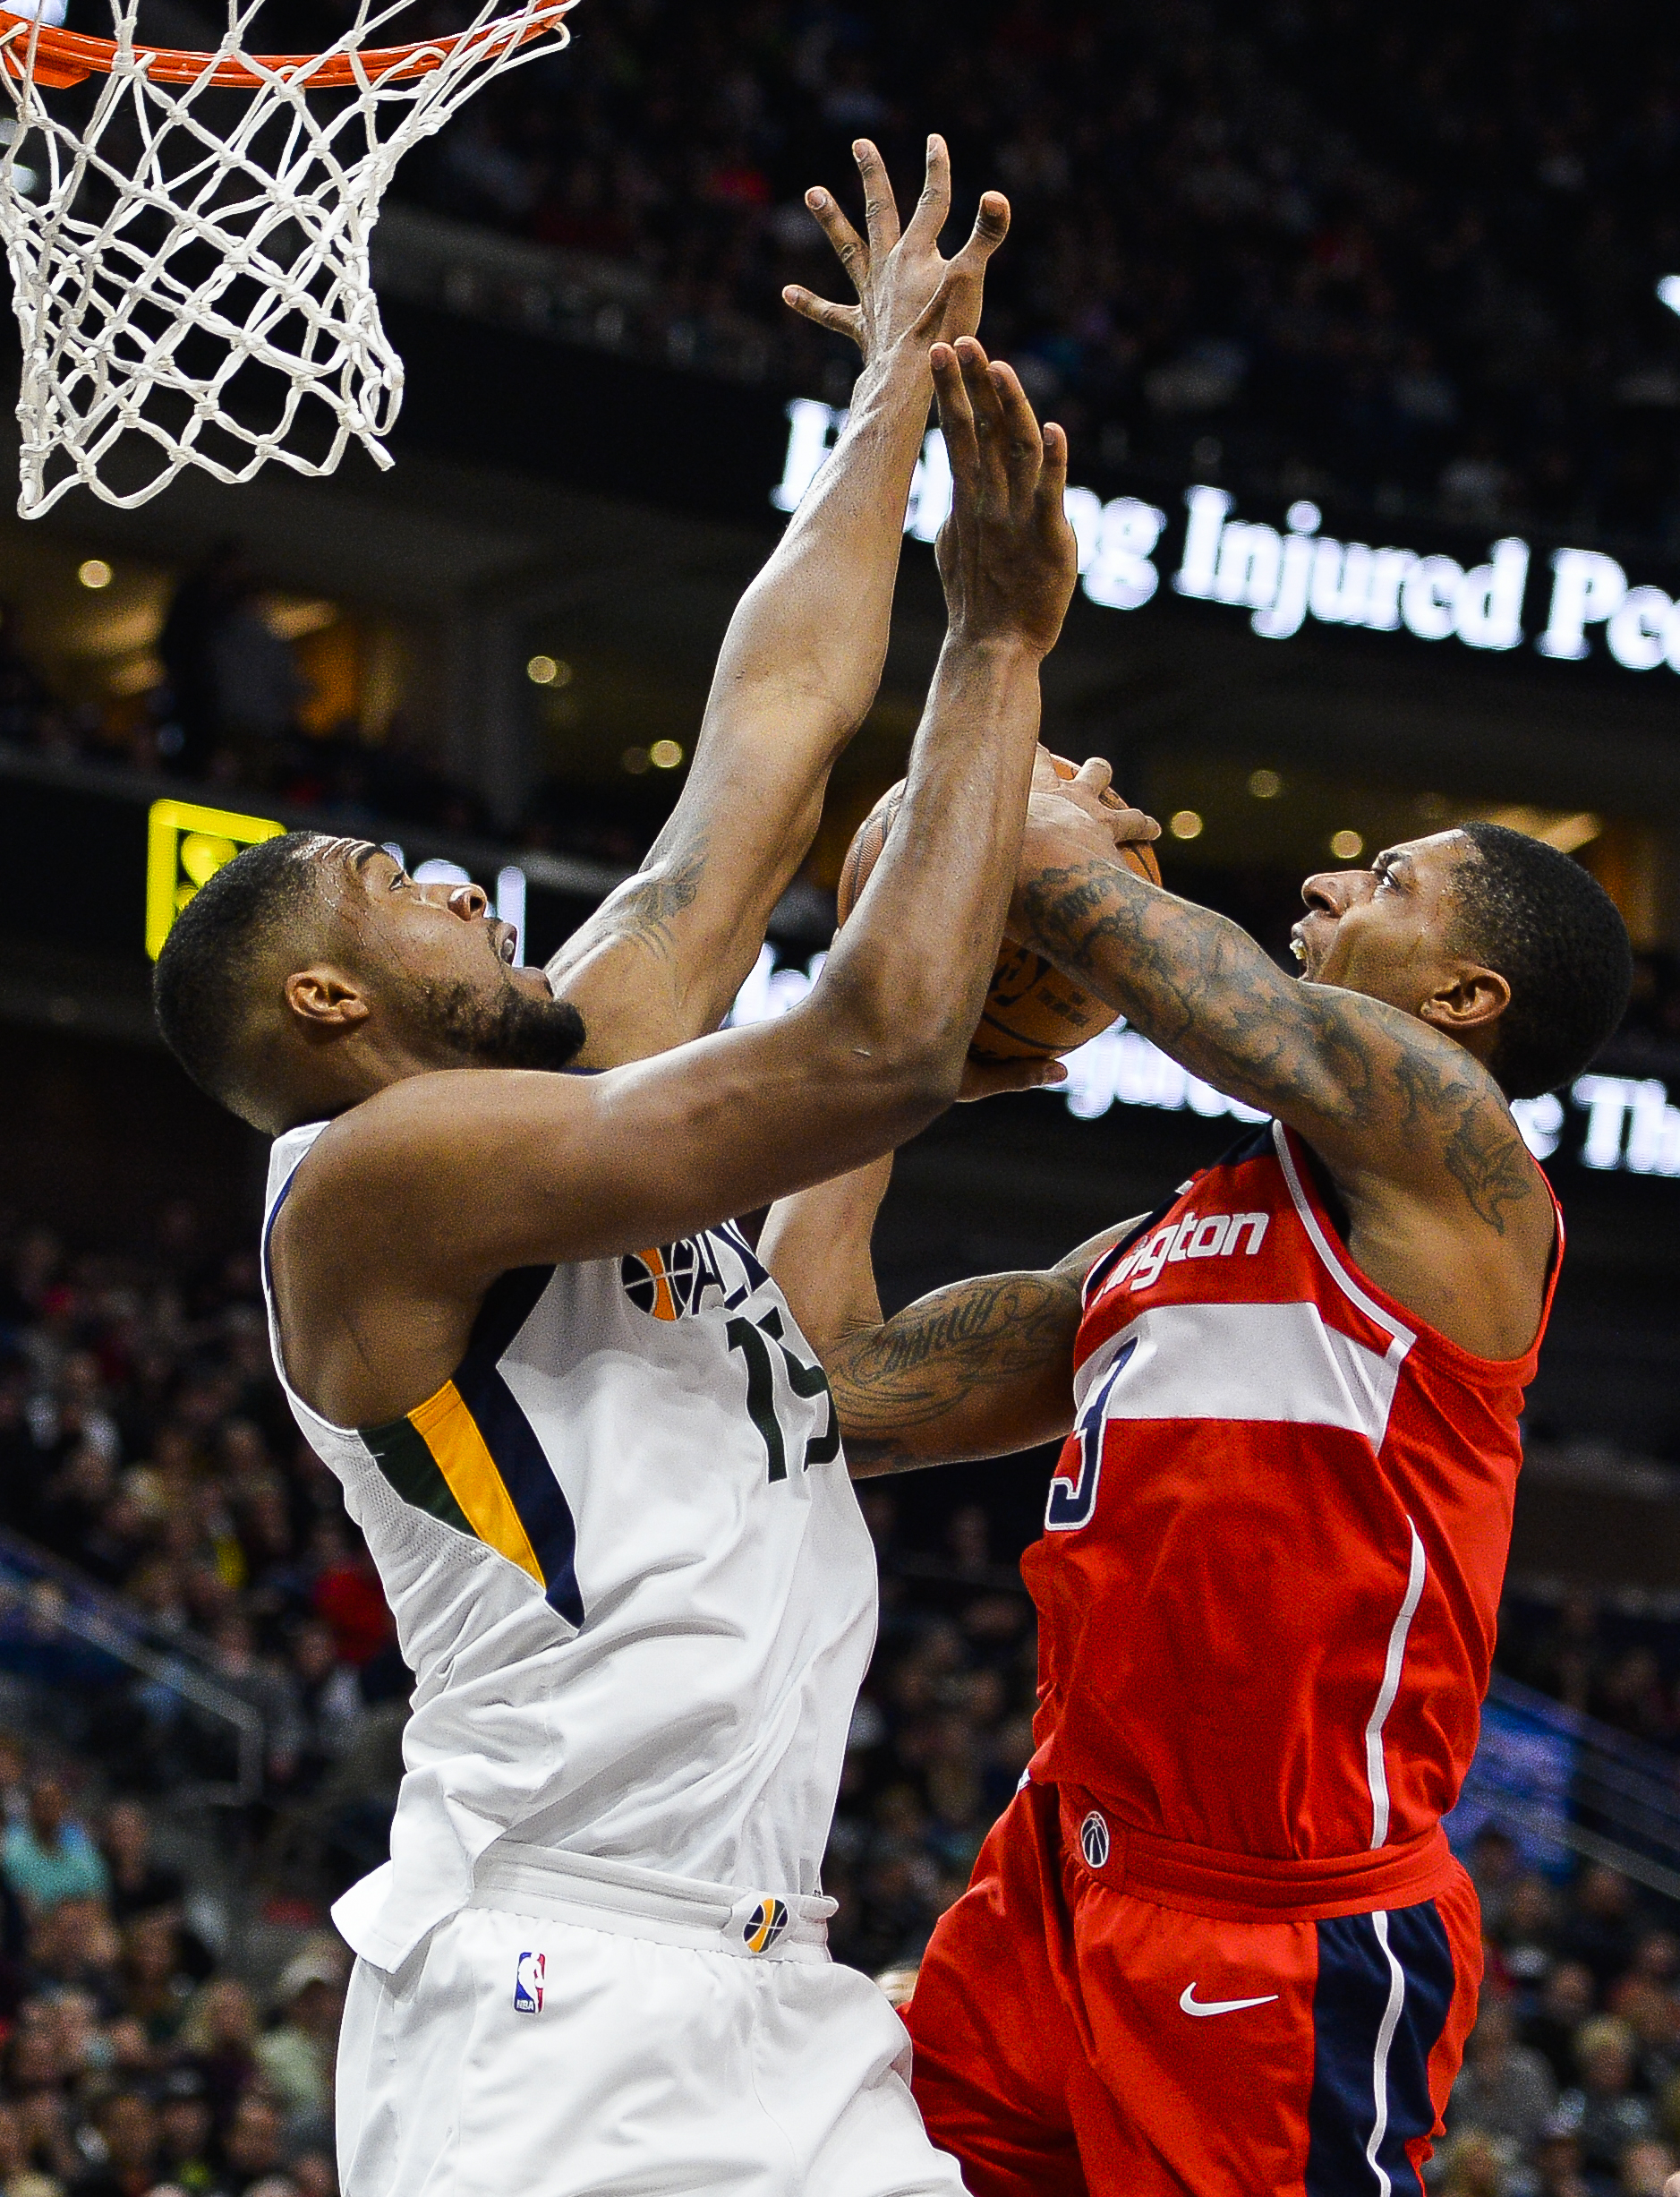 Utah Jazz forward Derrick Favors (15) attempts to block Washington Wizards guard Bradley Beal (3) in the first half of an NBA basketball game Monday, Dec. 4, 2017, in Salt Lake City. (AP Photo/Alex Goodlett)